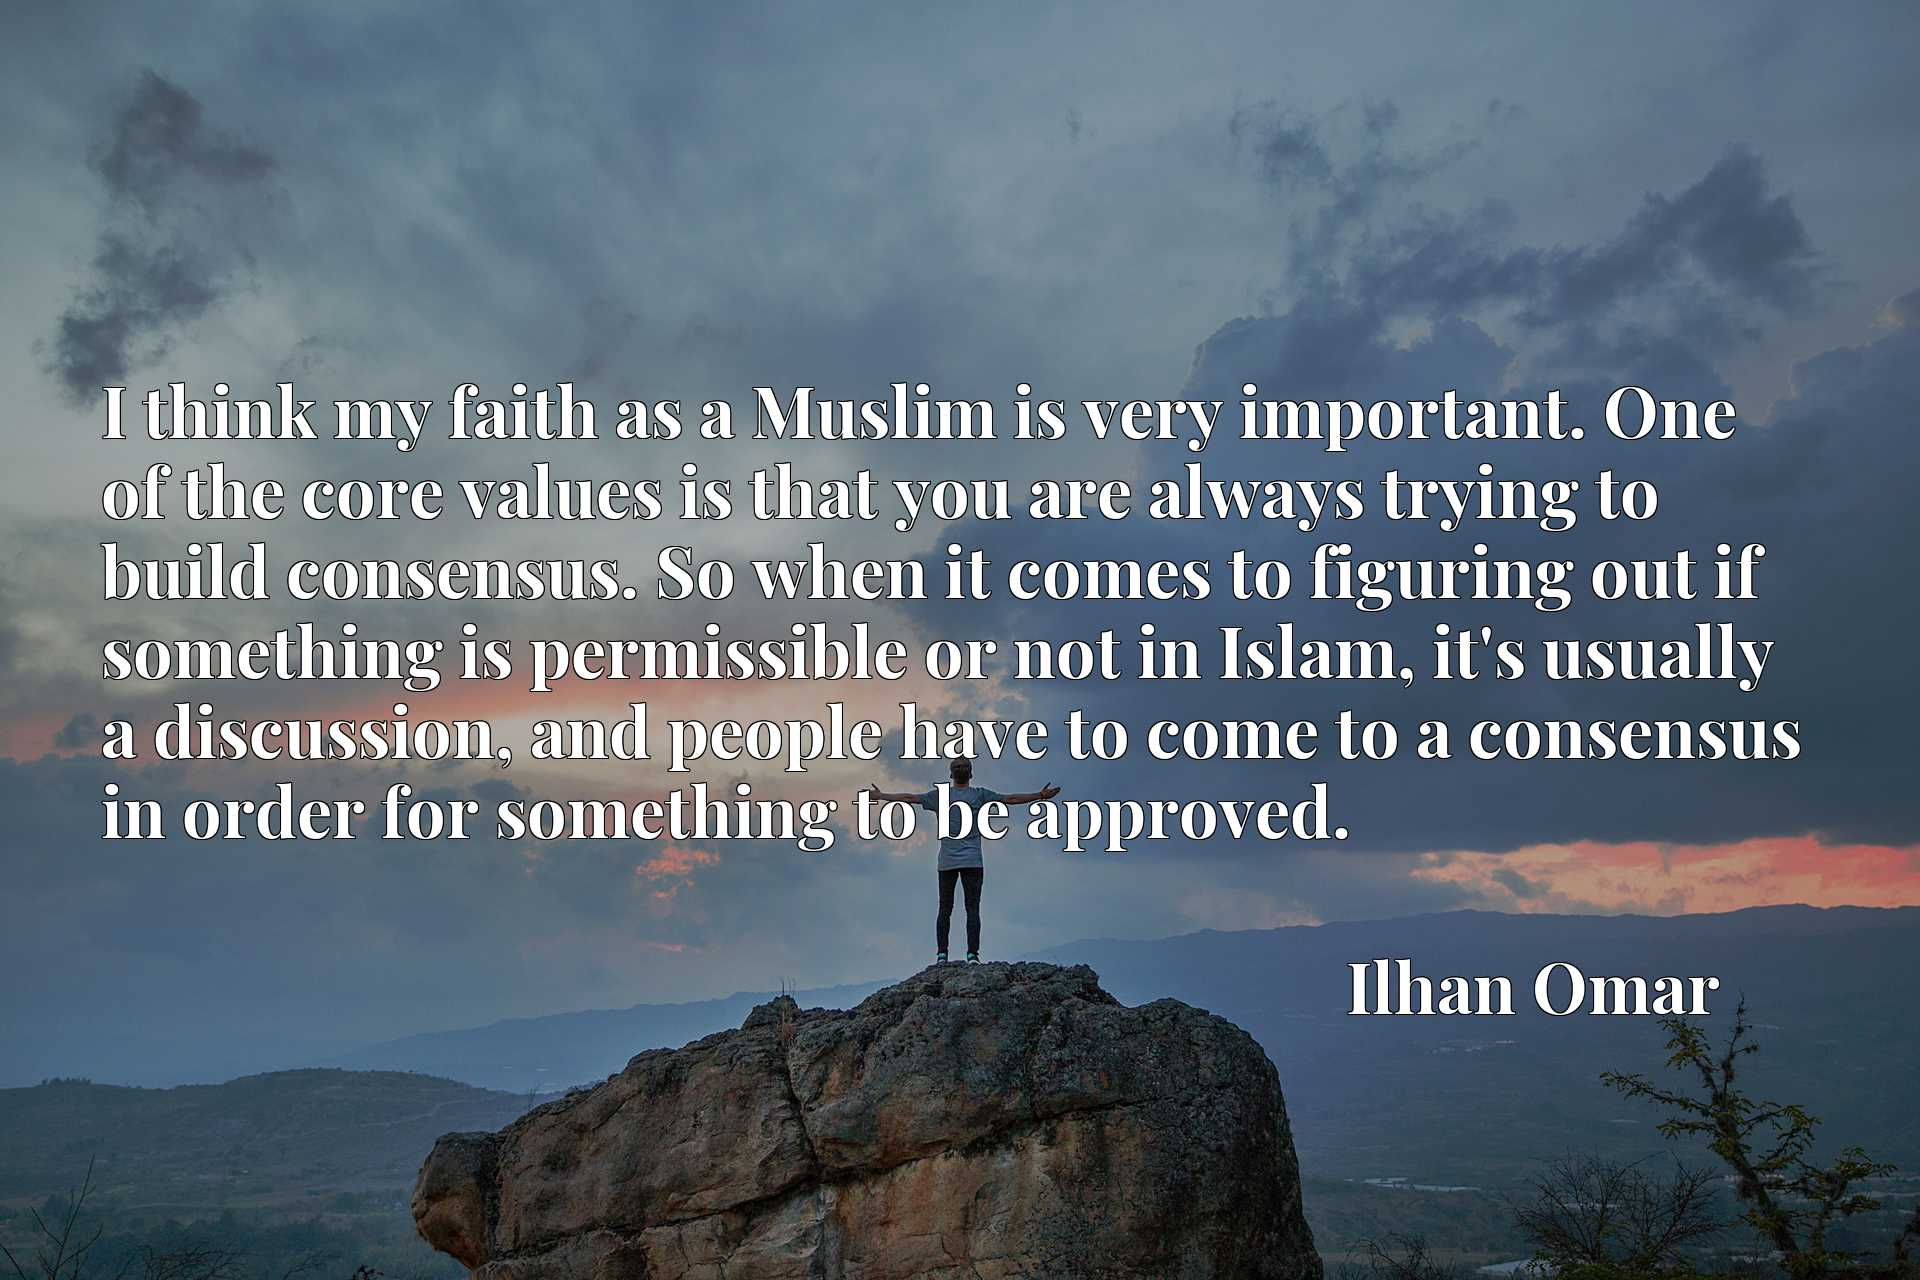 I think my faith as a Muslim is very important. One of the core values is that you are always trying to build consensus. So when it comes to figuring out if something is permissible or not in Islam, it's usually a discussion, and people have to come to a consensus in order for something to be approved.